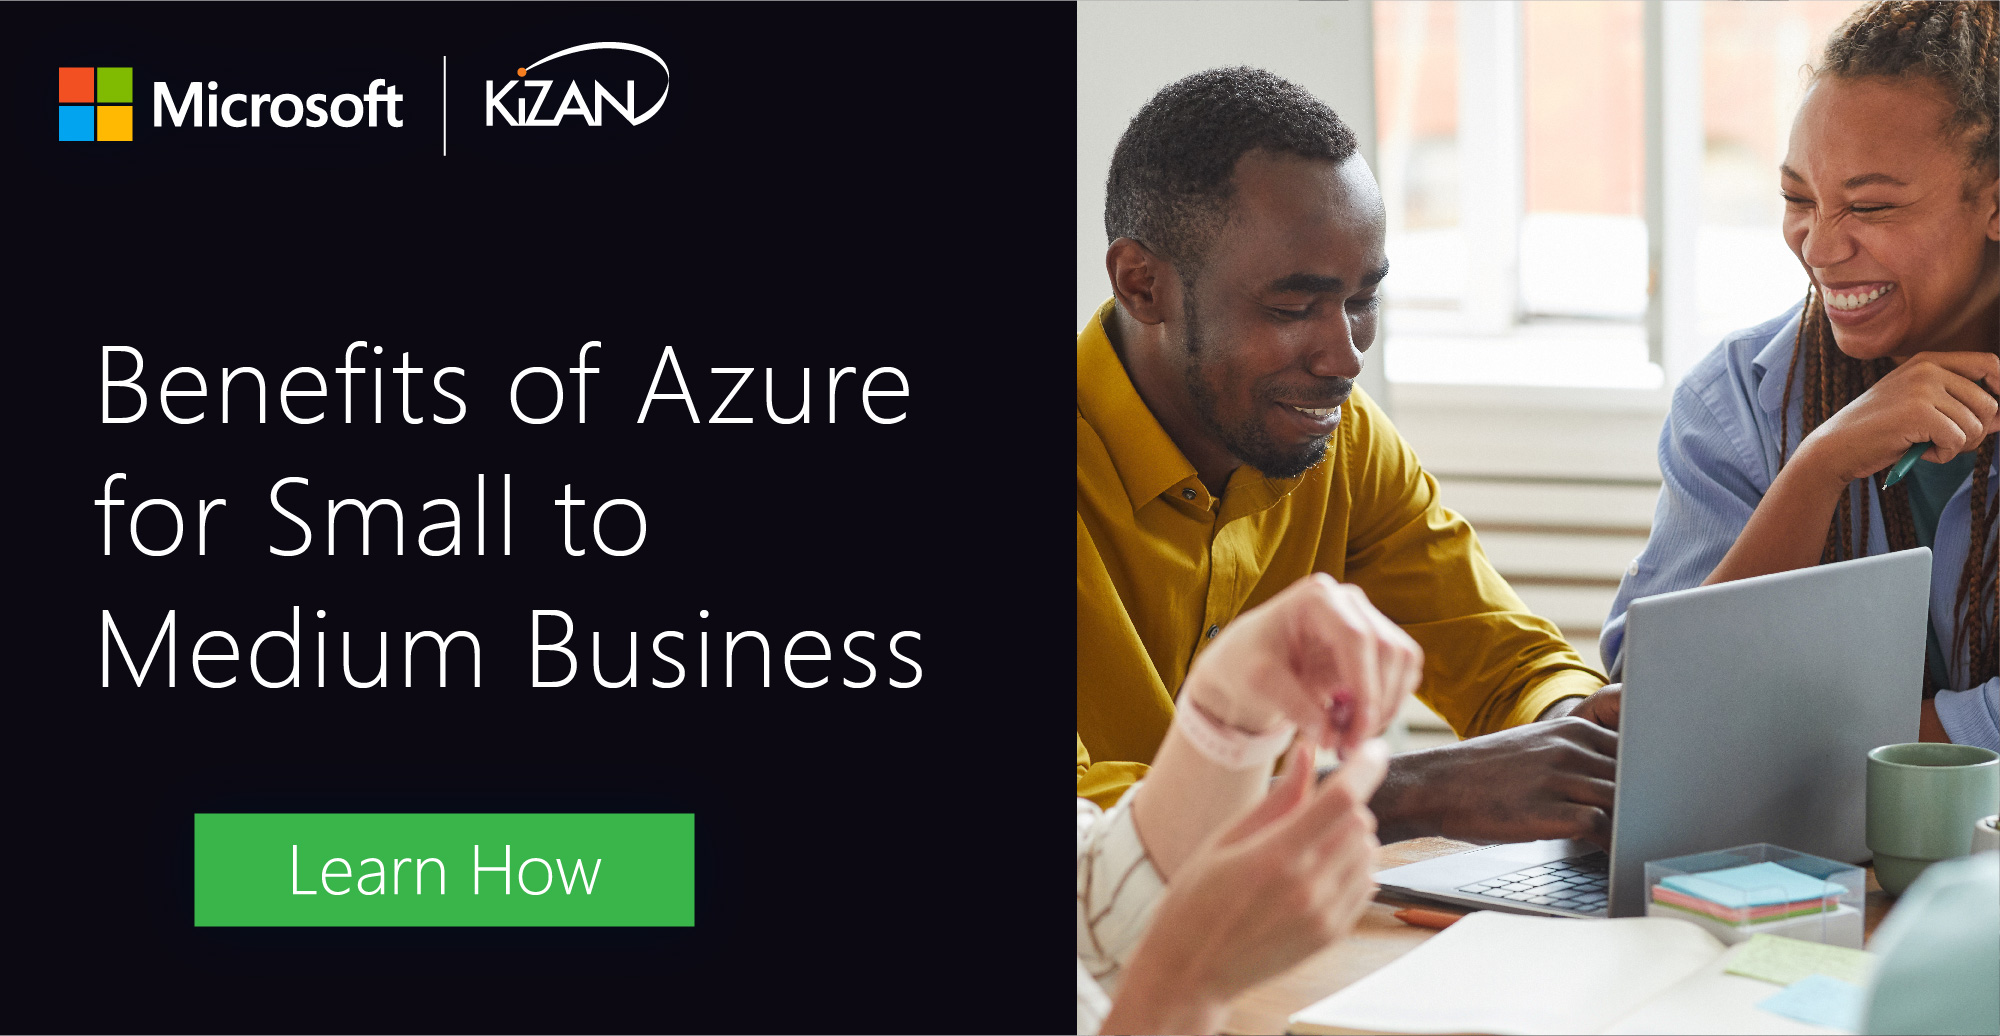 Benefits of Azure for Small to Medium Business